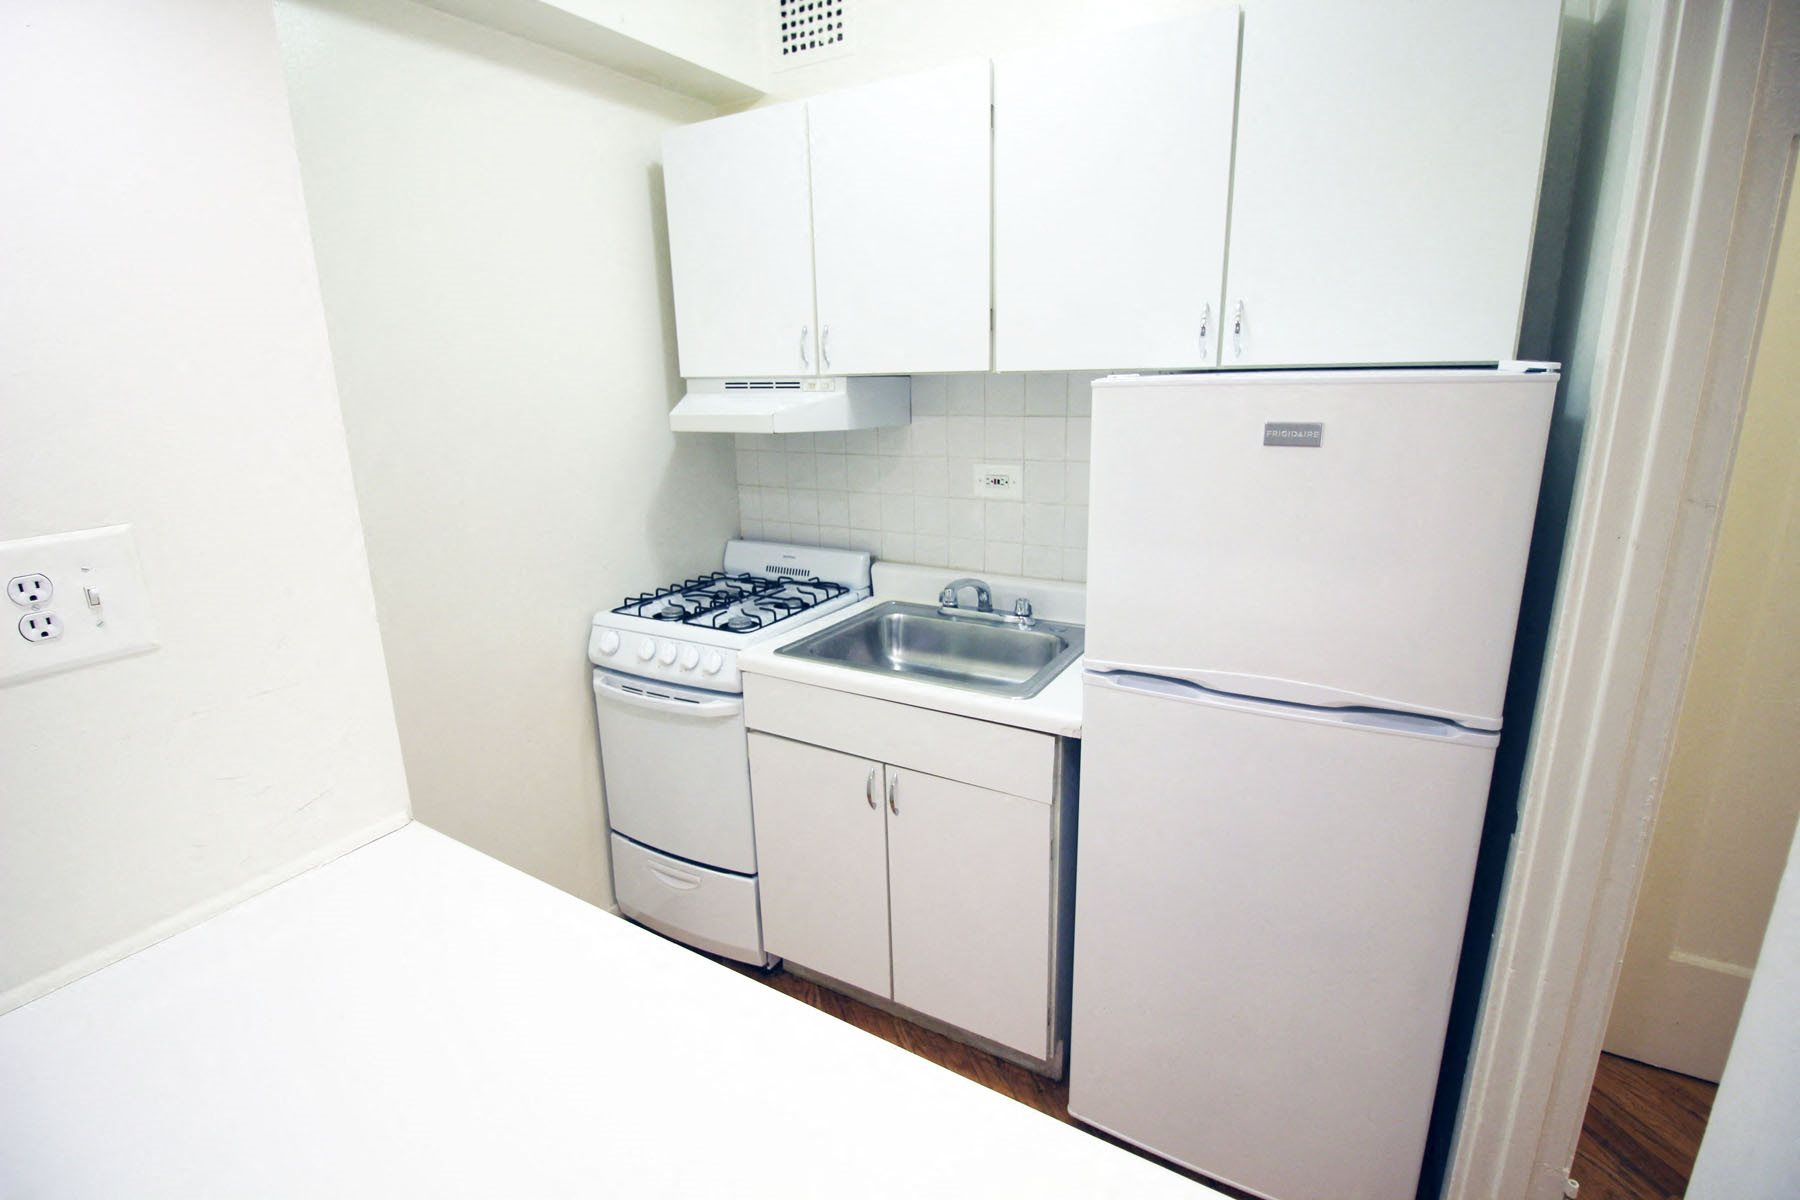 Refrigerator with Ice Maker at 14 West Elm Apartments, Chicago,Illinois